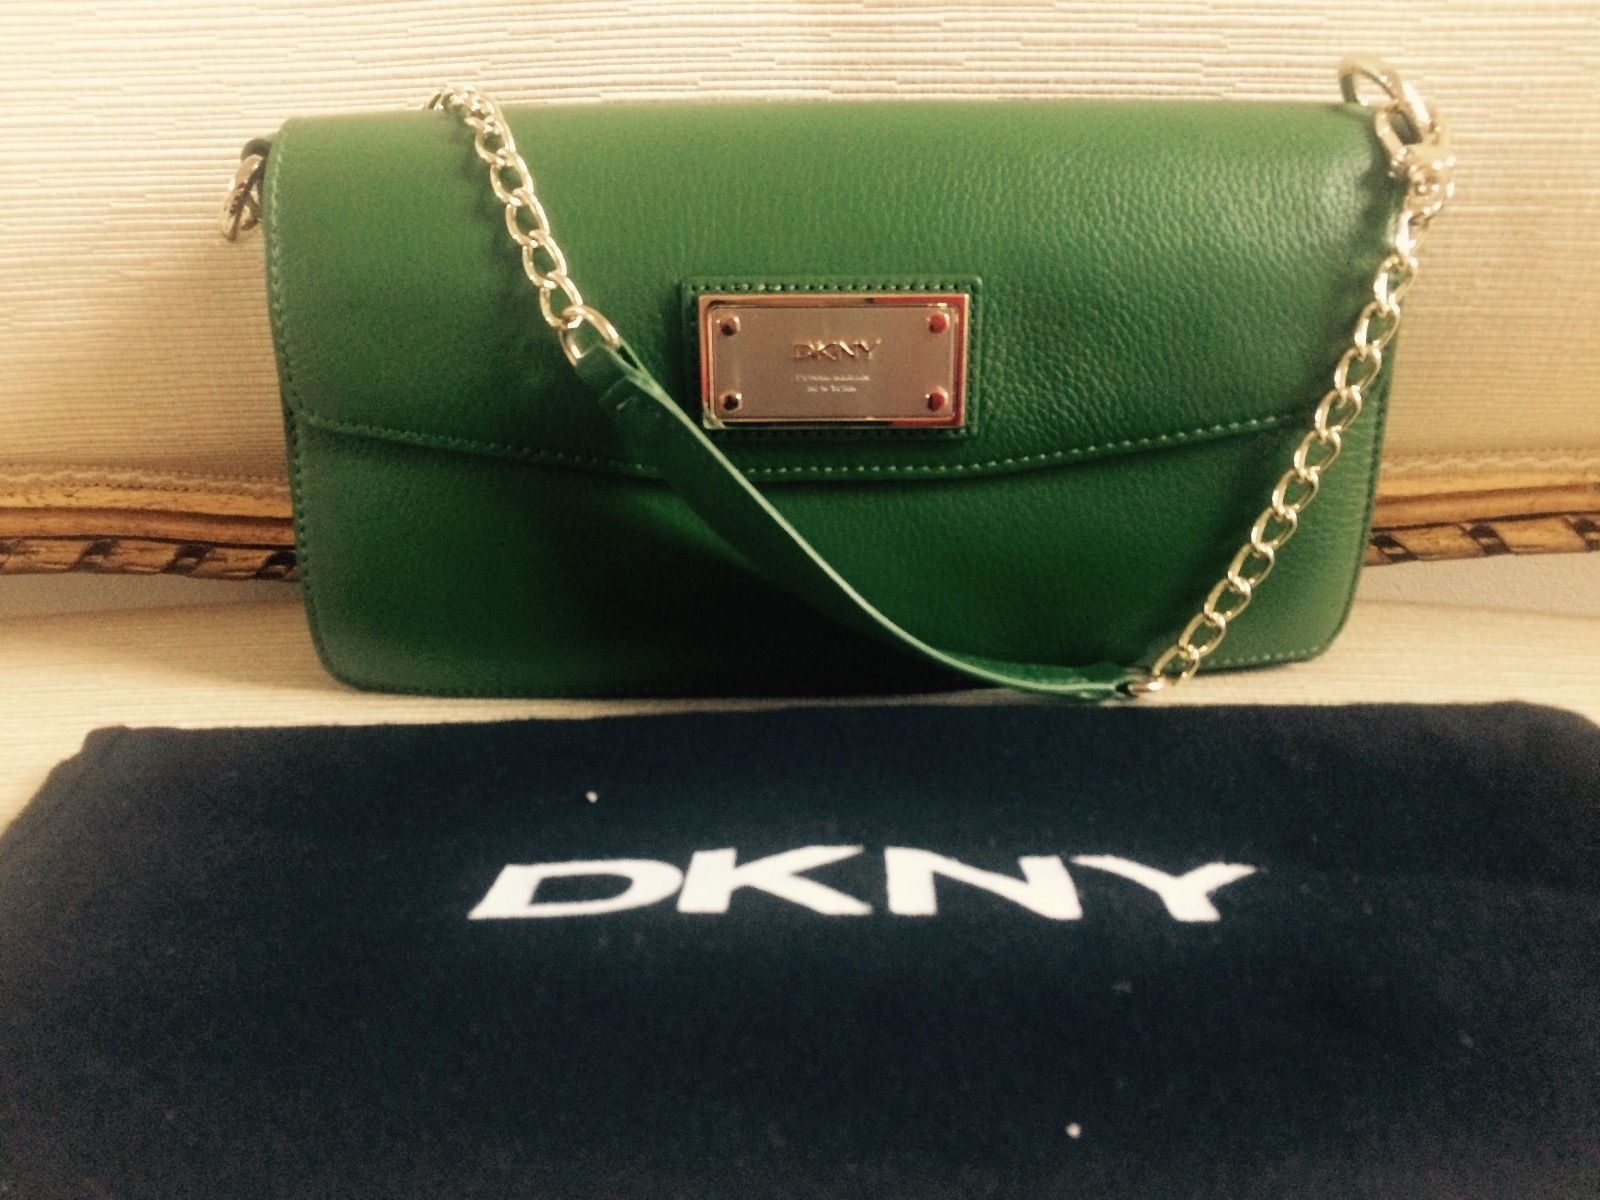 DKNY Green Leather Chain Shoulder Flap Bag